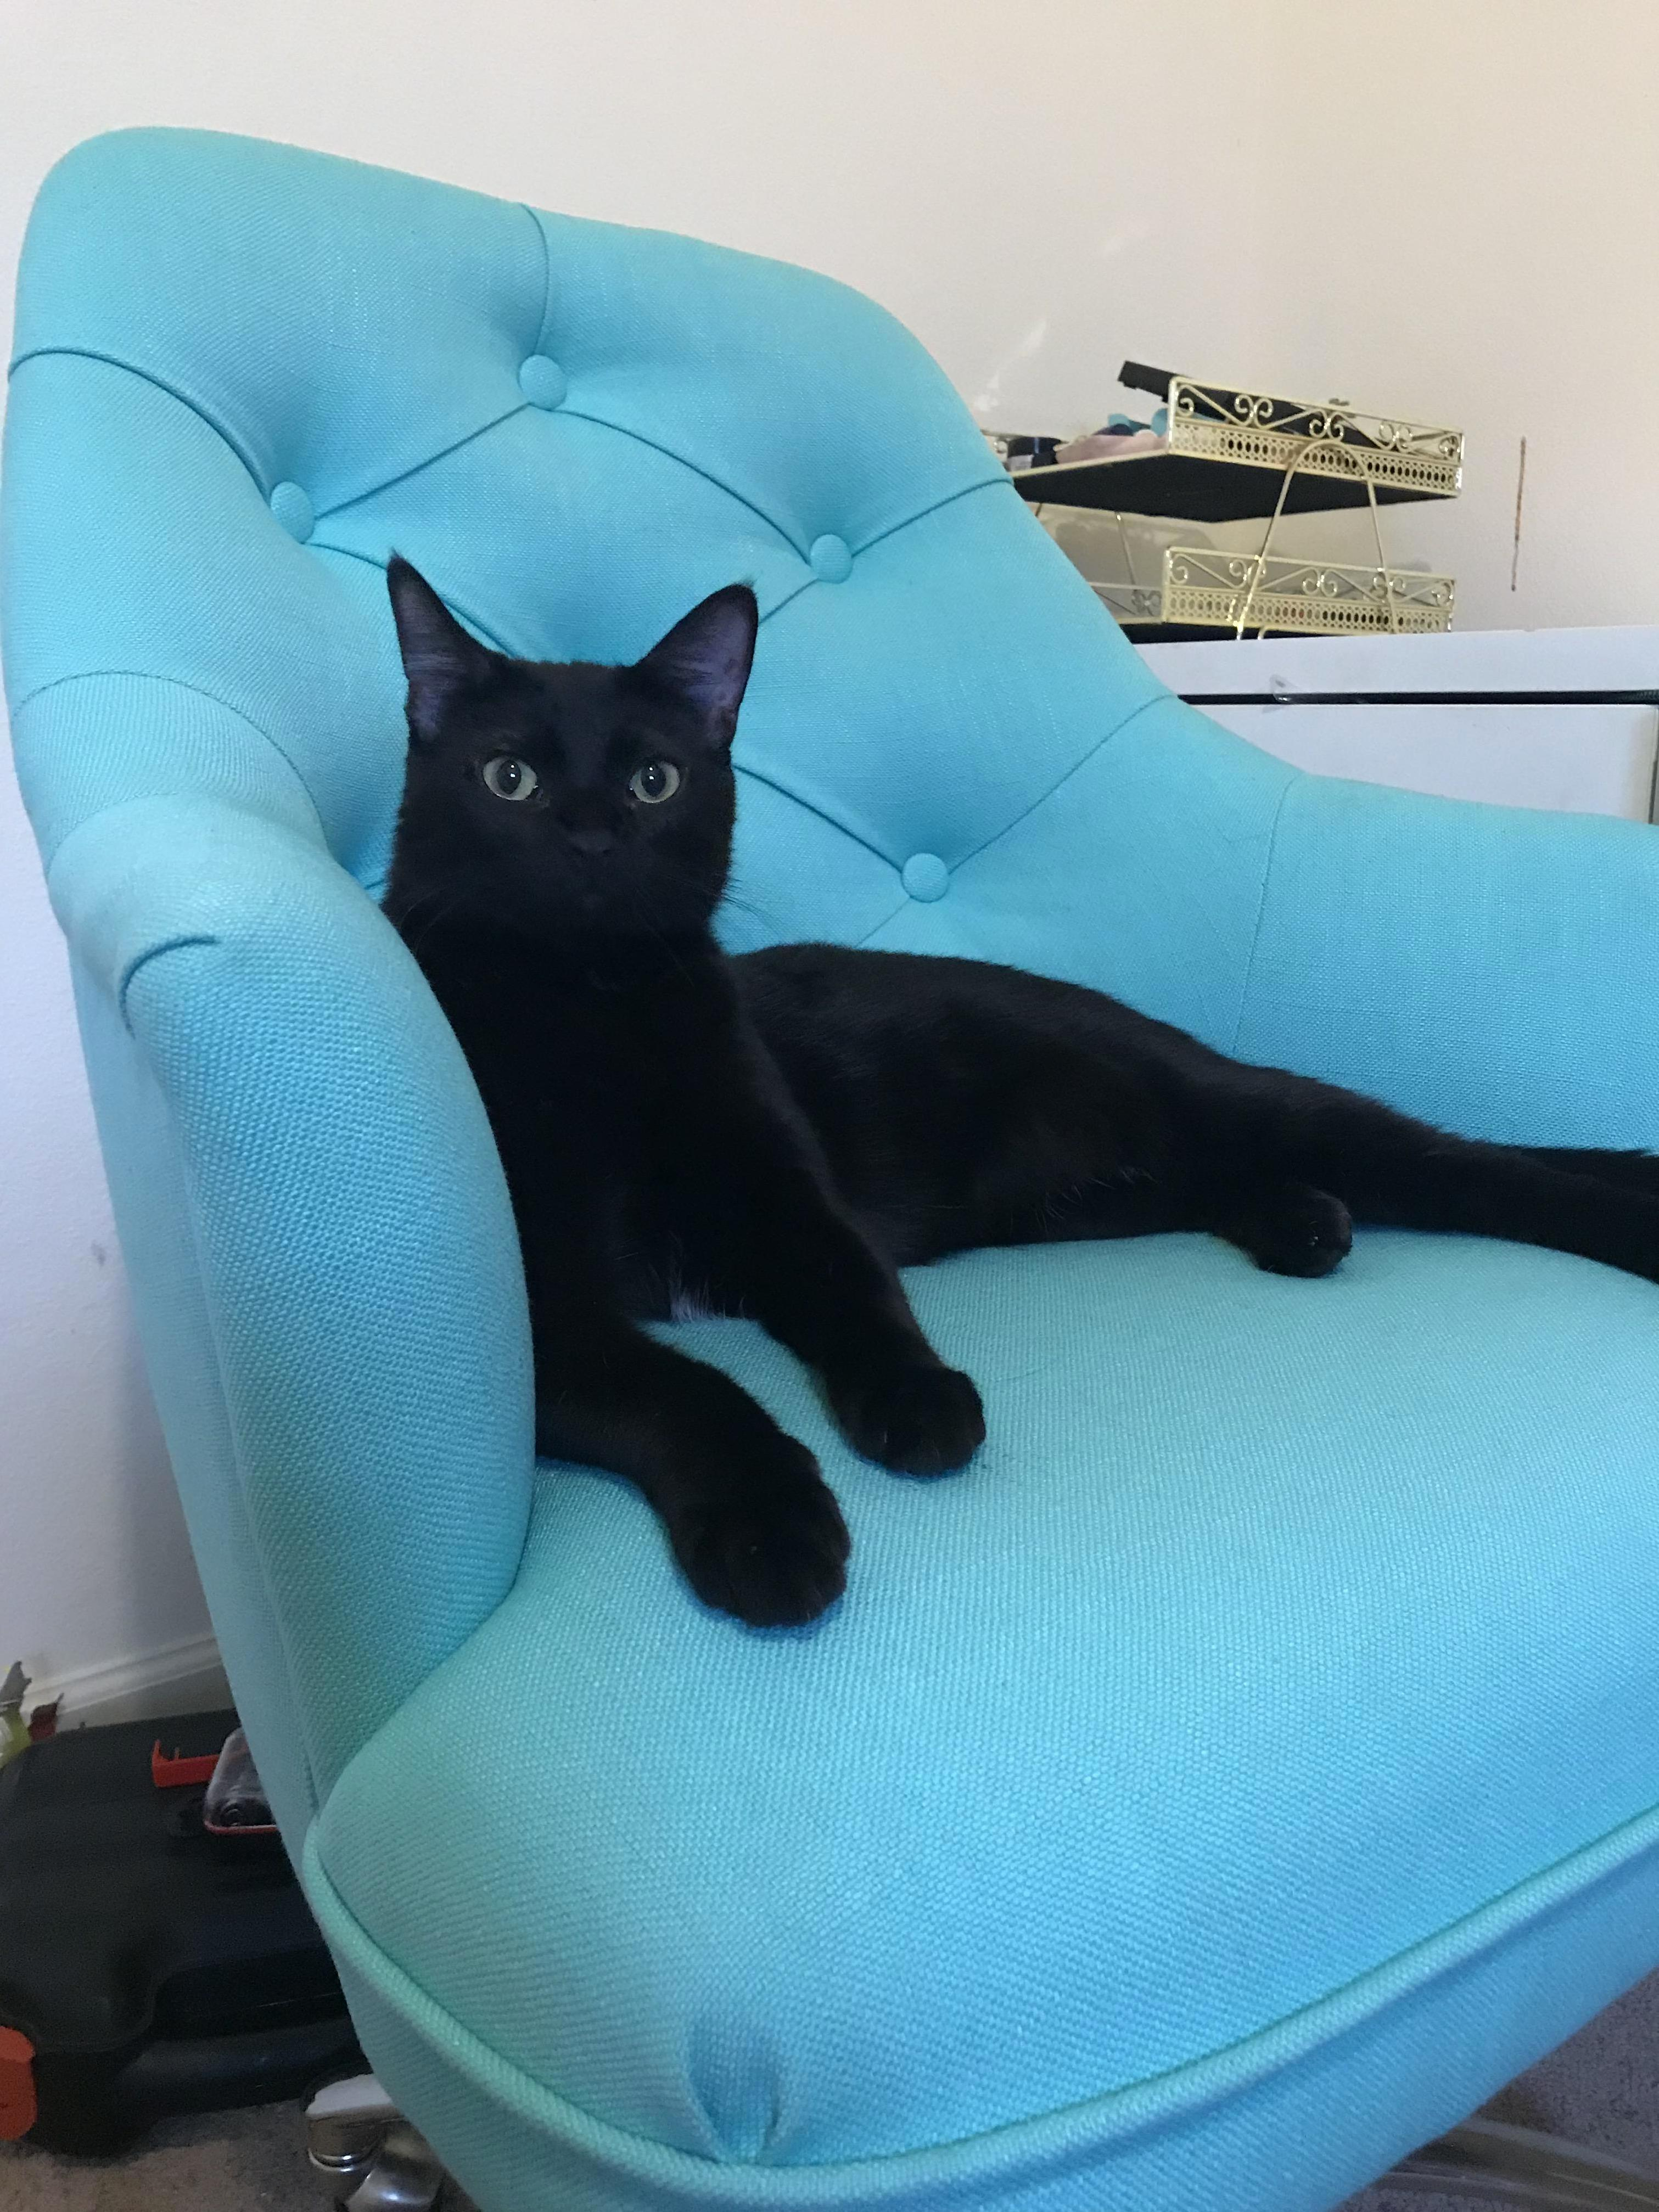 Had to be first in moms new chair. mufasa is king of all he surveys.